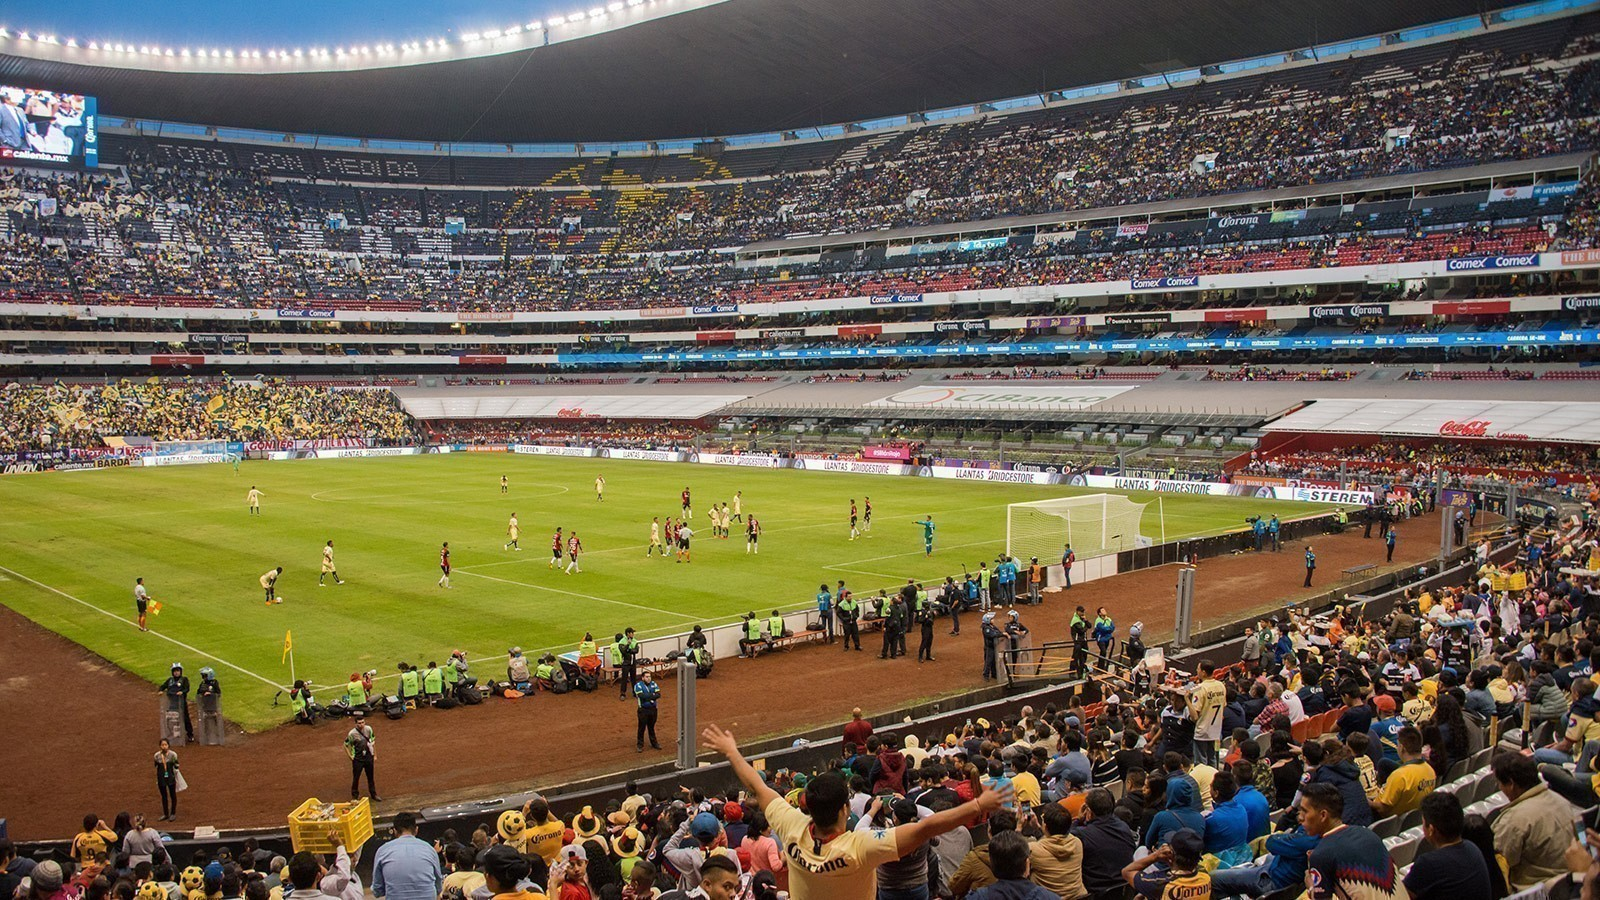 Ground Layout of Azteca Stadium